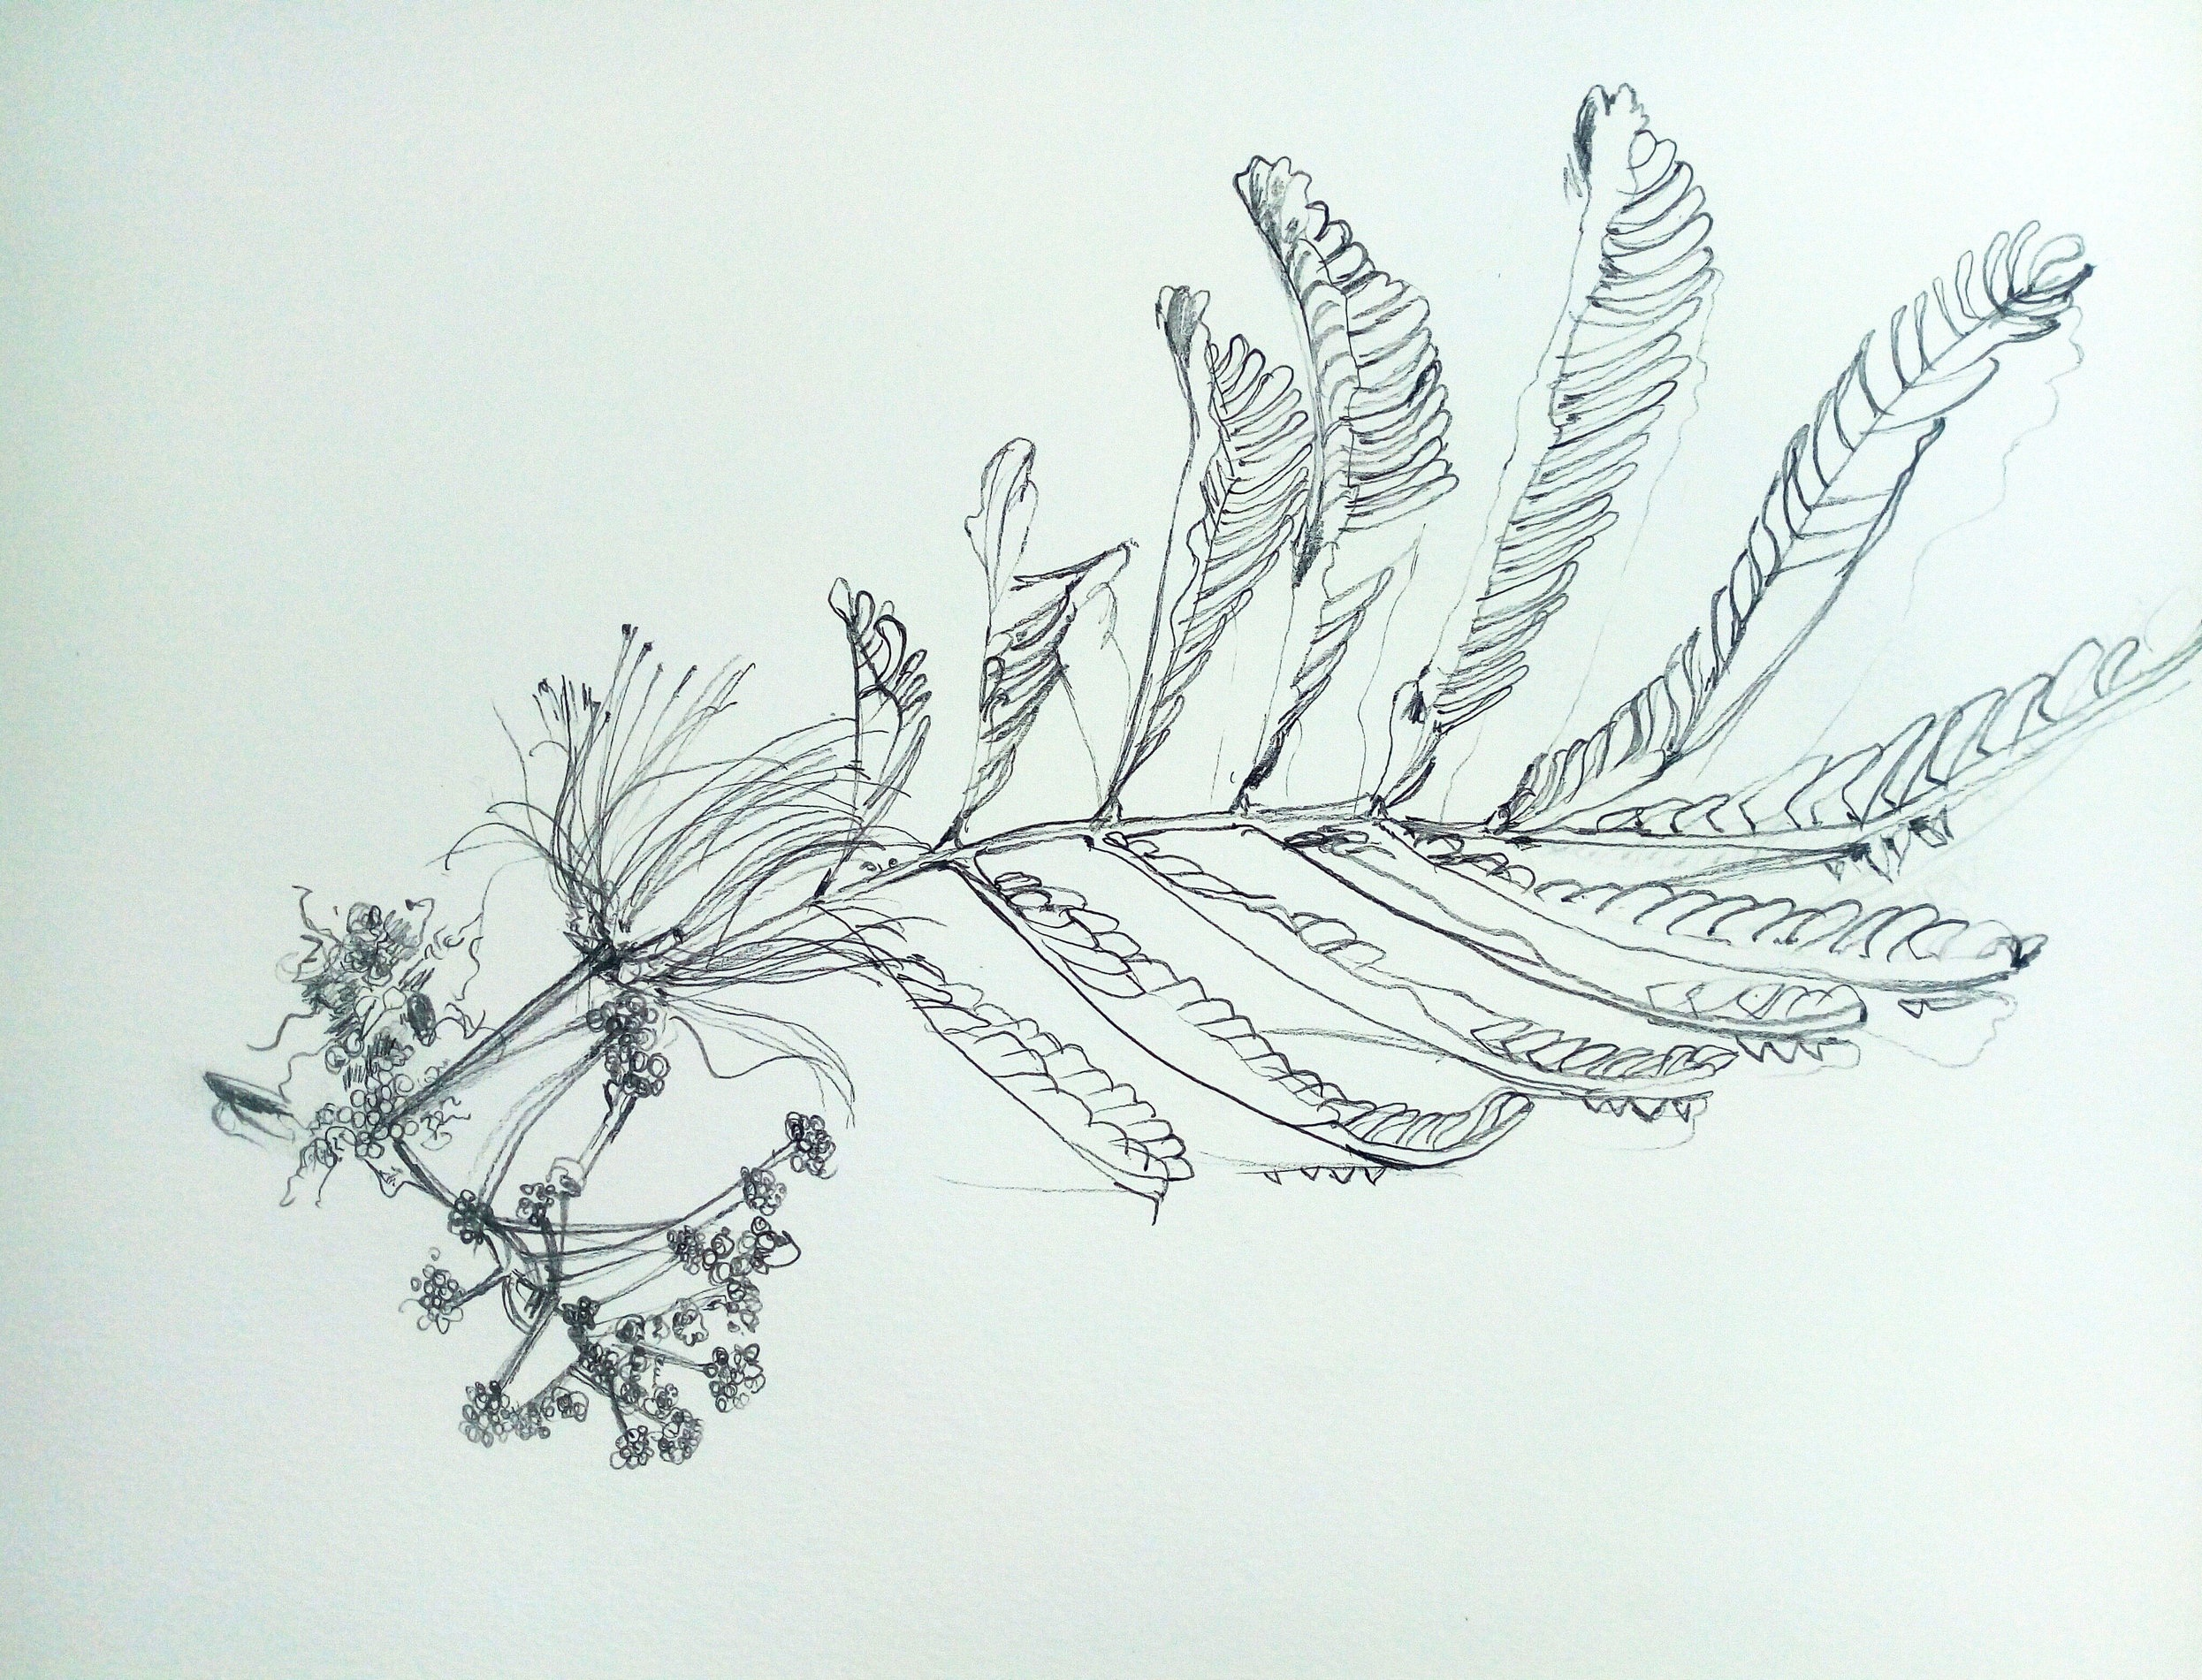 persian silk - albizia julibrissin, pencil on paper, 38 x 28cm, june 2019, £70